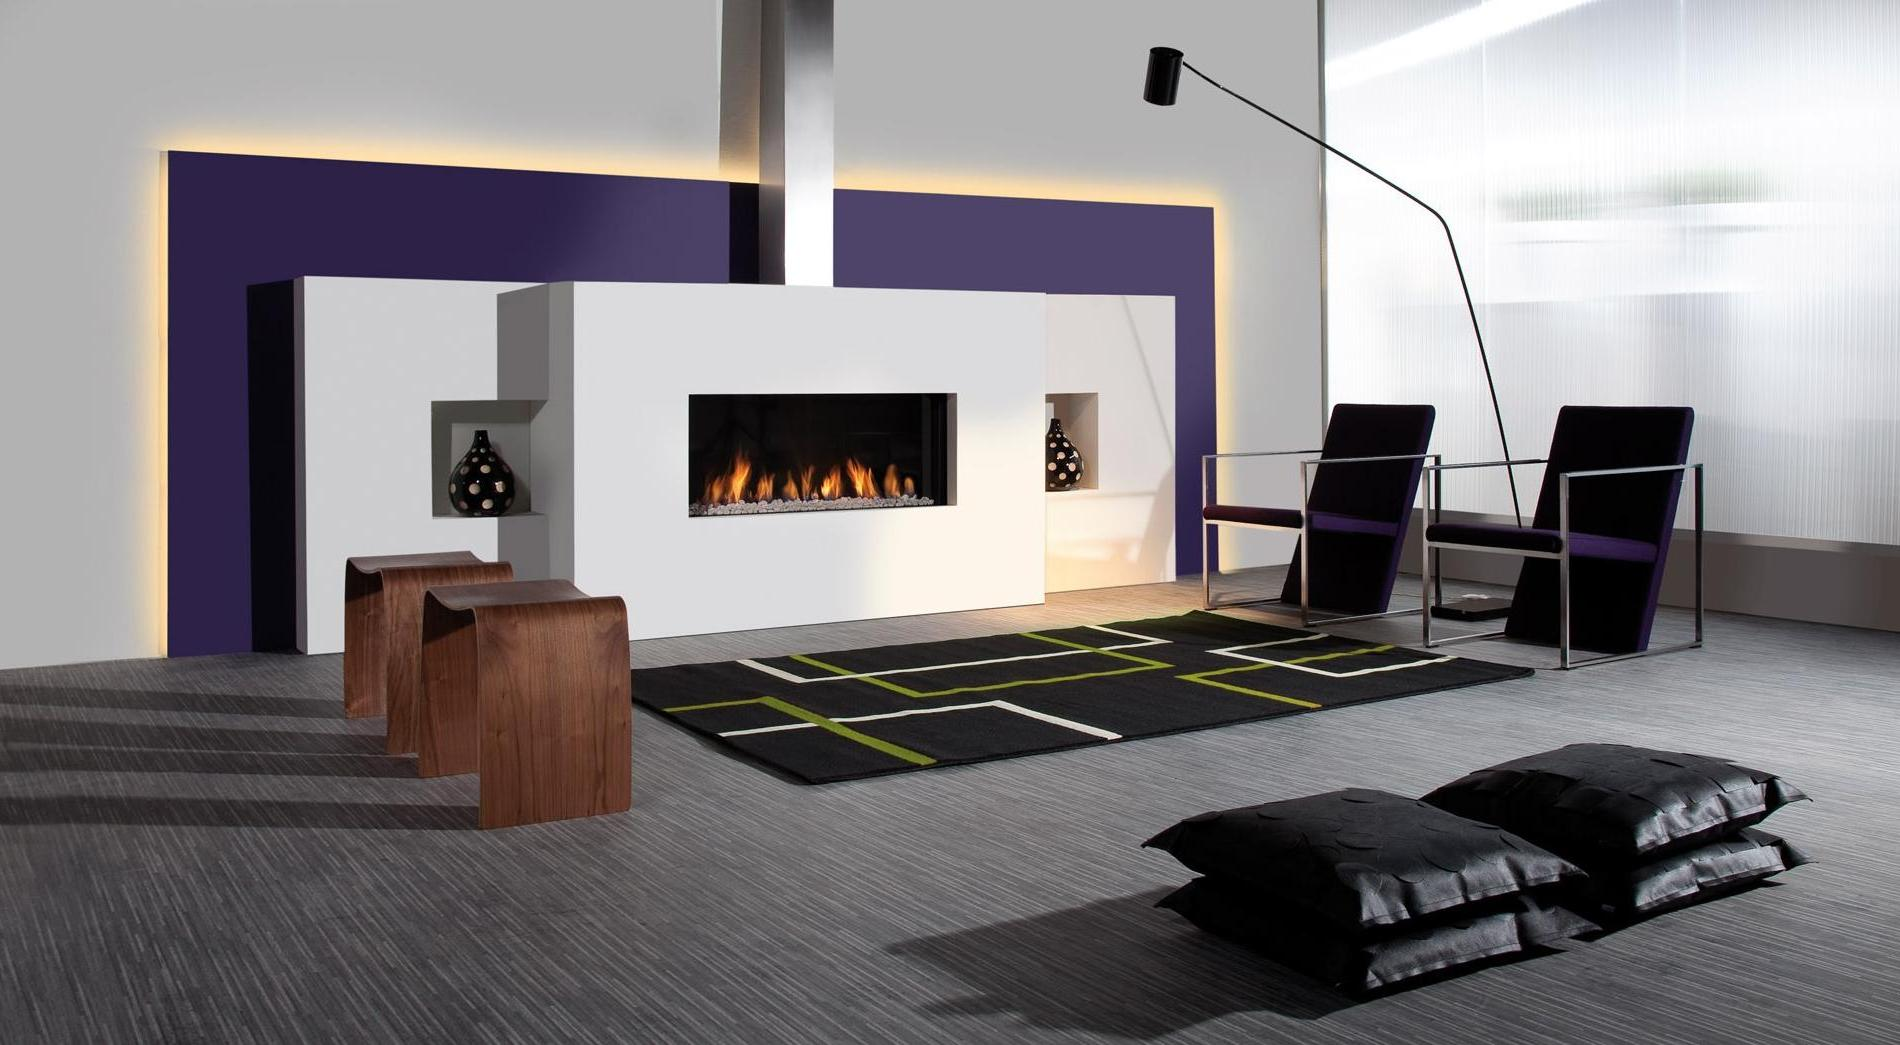 Beckoning Arm Chair near Arch Floor Lamp and Modern Fireplace Design Ideas